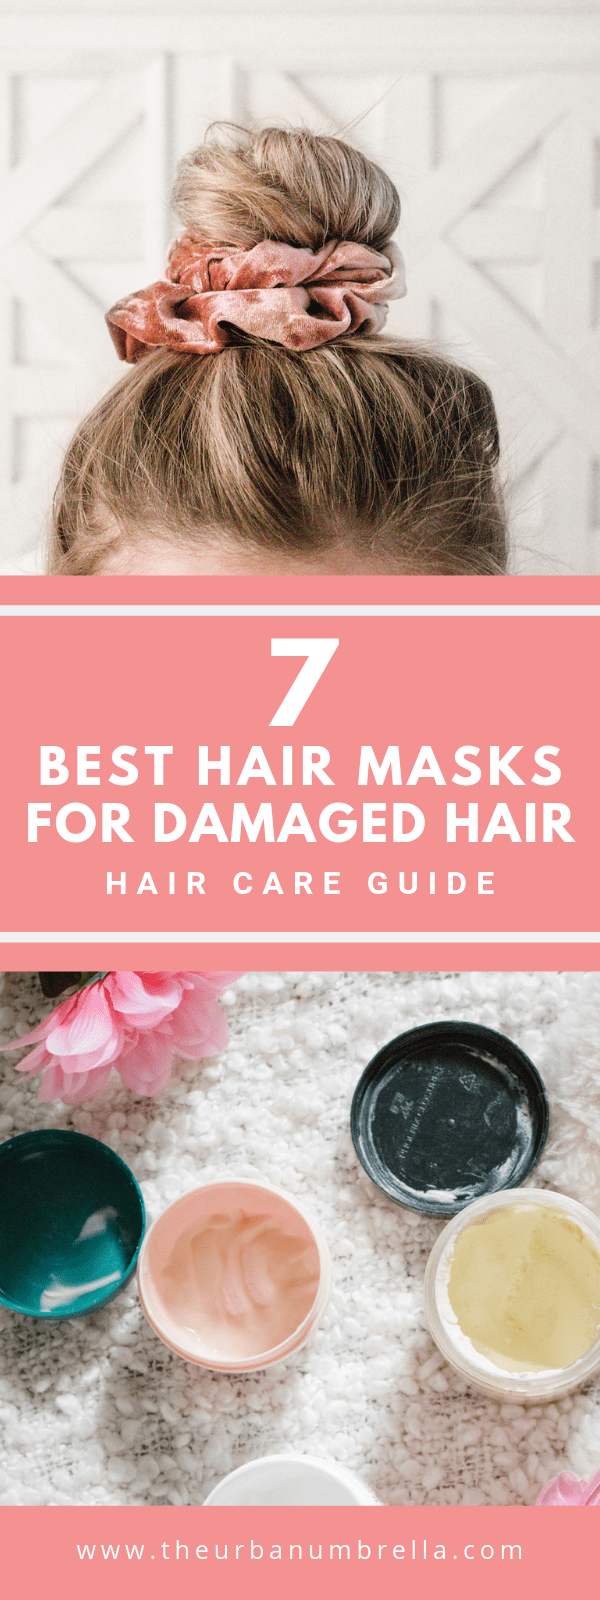 Best Hair Masks for Damaged Hair